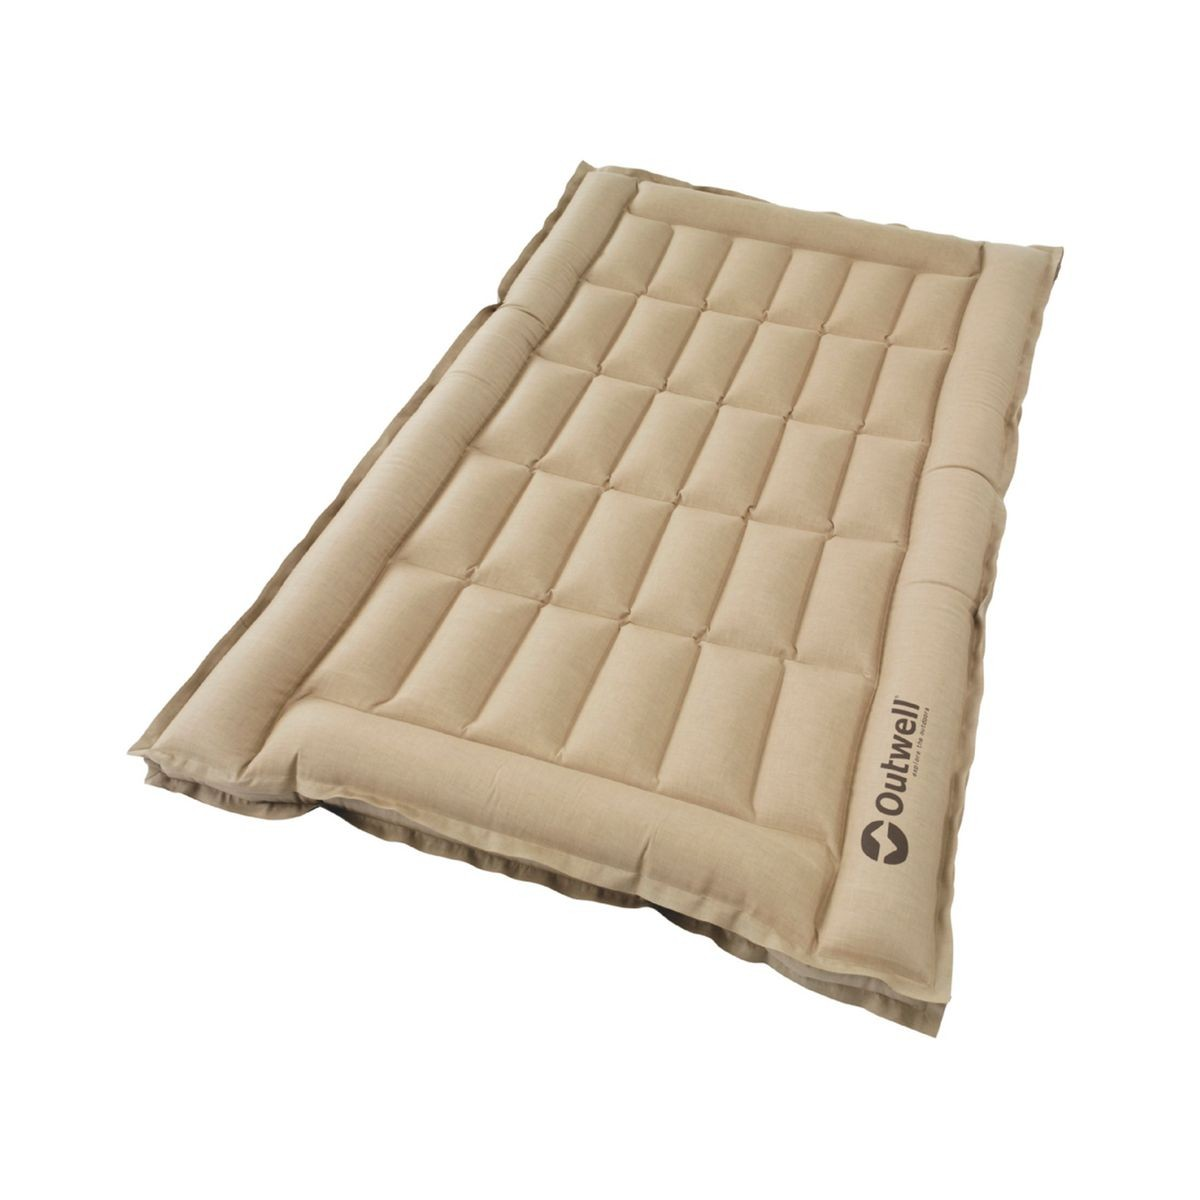 Airbed Box Matelas Gonflable 2 Places Beige Taille Taille Unique Matelas Gonflable Matelas Gonflable